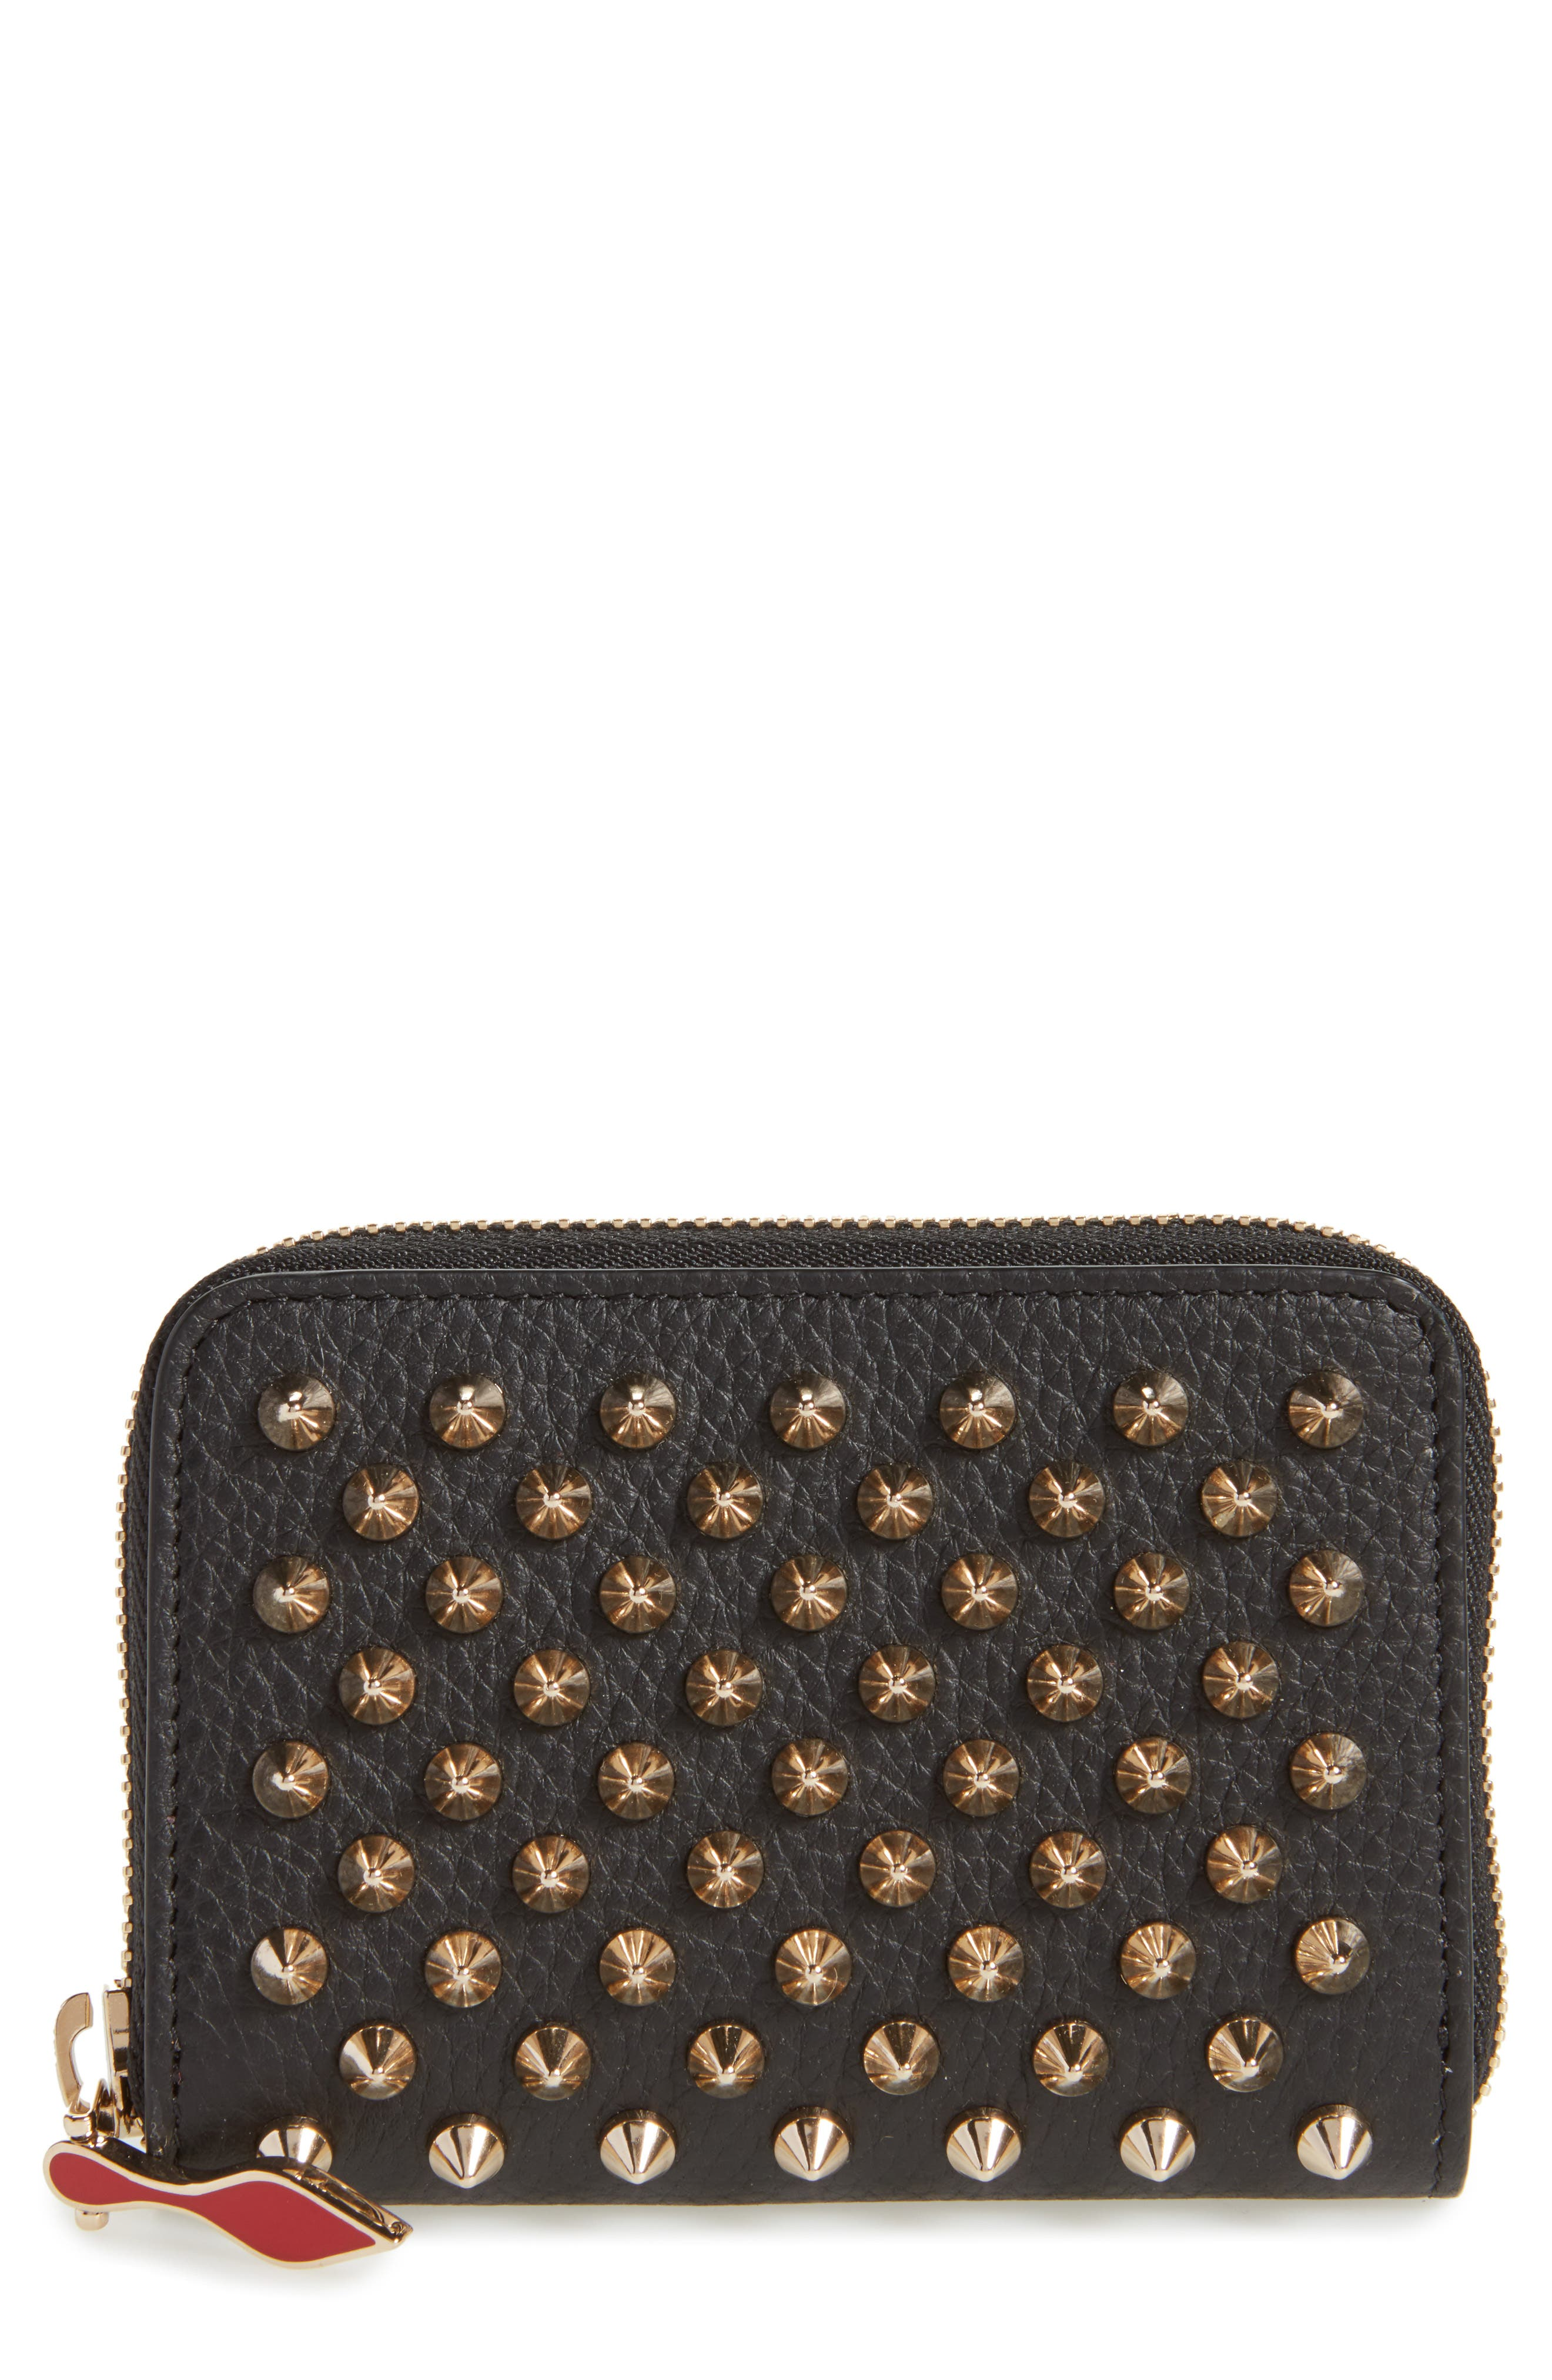 Panettone Leather Coin Purse,                         Main,                         color, BLACK/ GOLD